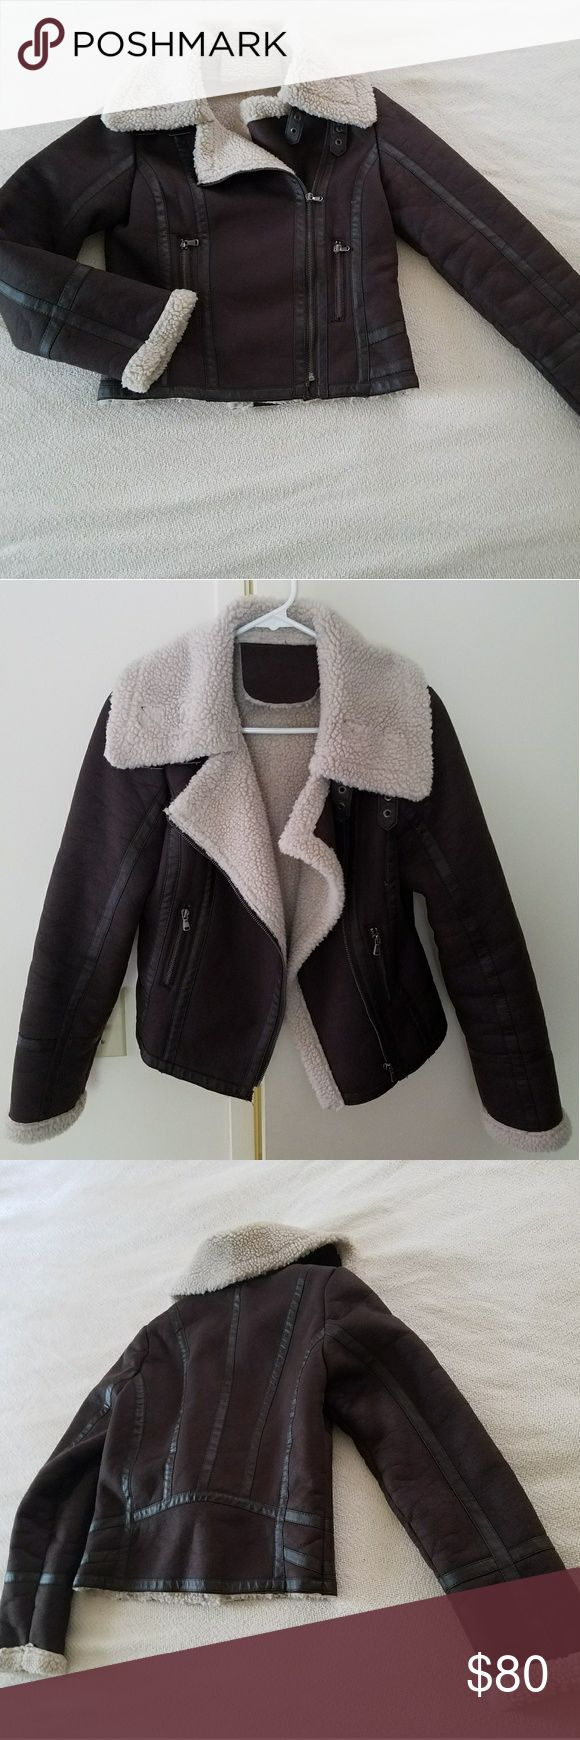 TOPSHOP jacket Faux suede chocolate brown w cream shearling collar and cuffs. Item like new! Size US6. Topshop Jackets & Coats